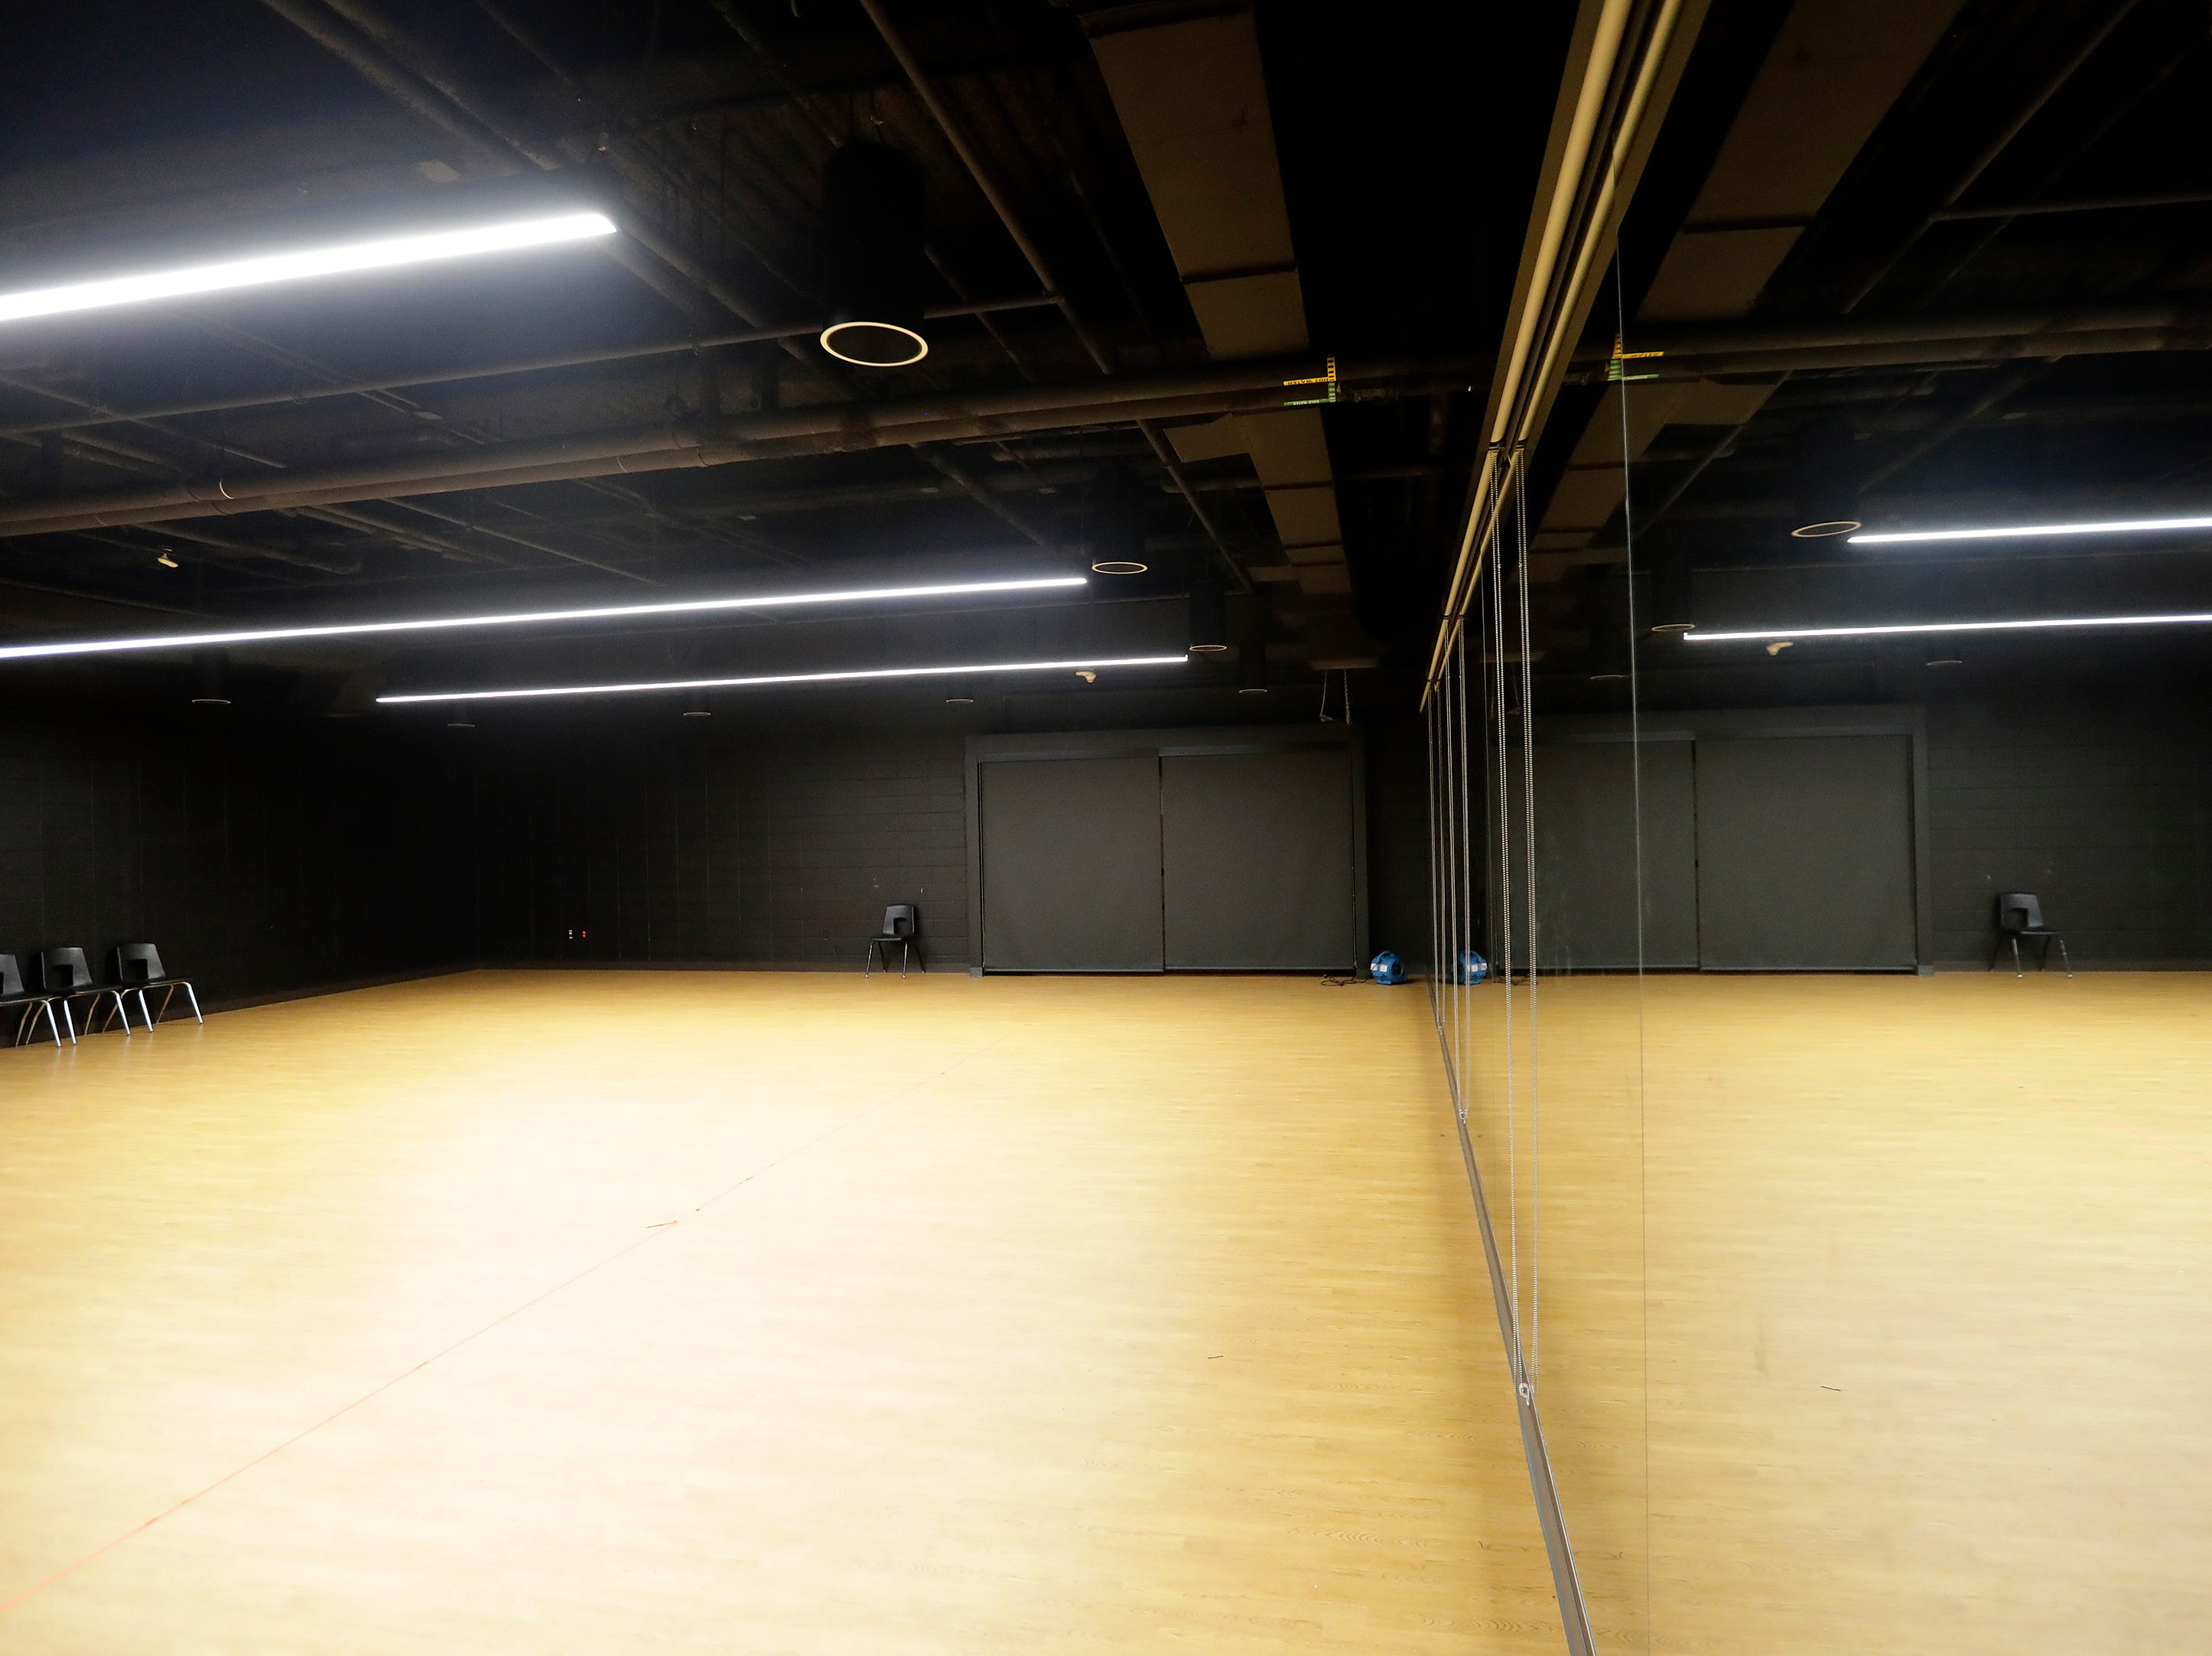 The new dance rehearsal studio in the remodeled art wing at East High School is shown on Wednesday, February 13, 2019 in Green Bay, Wis.